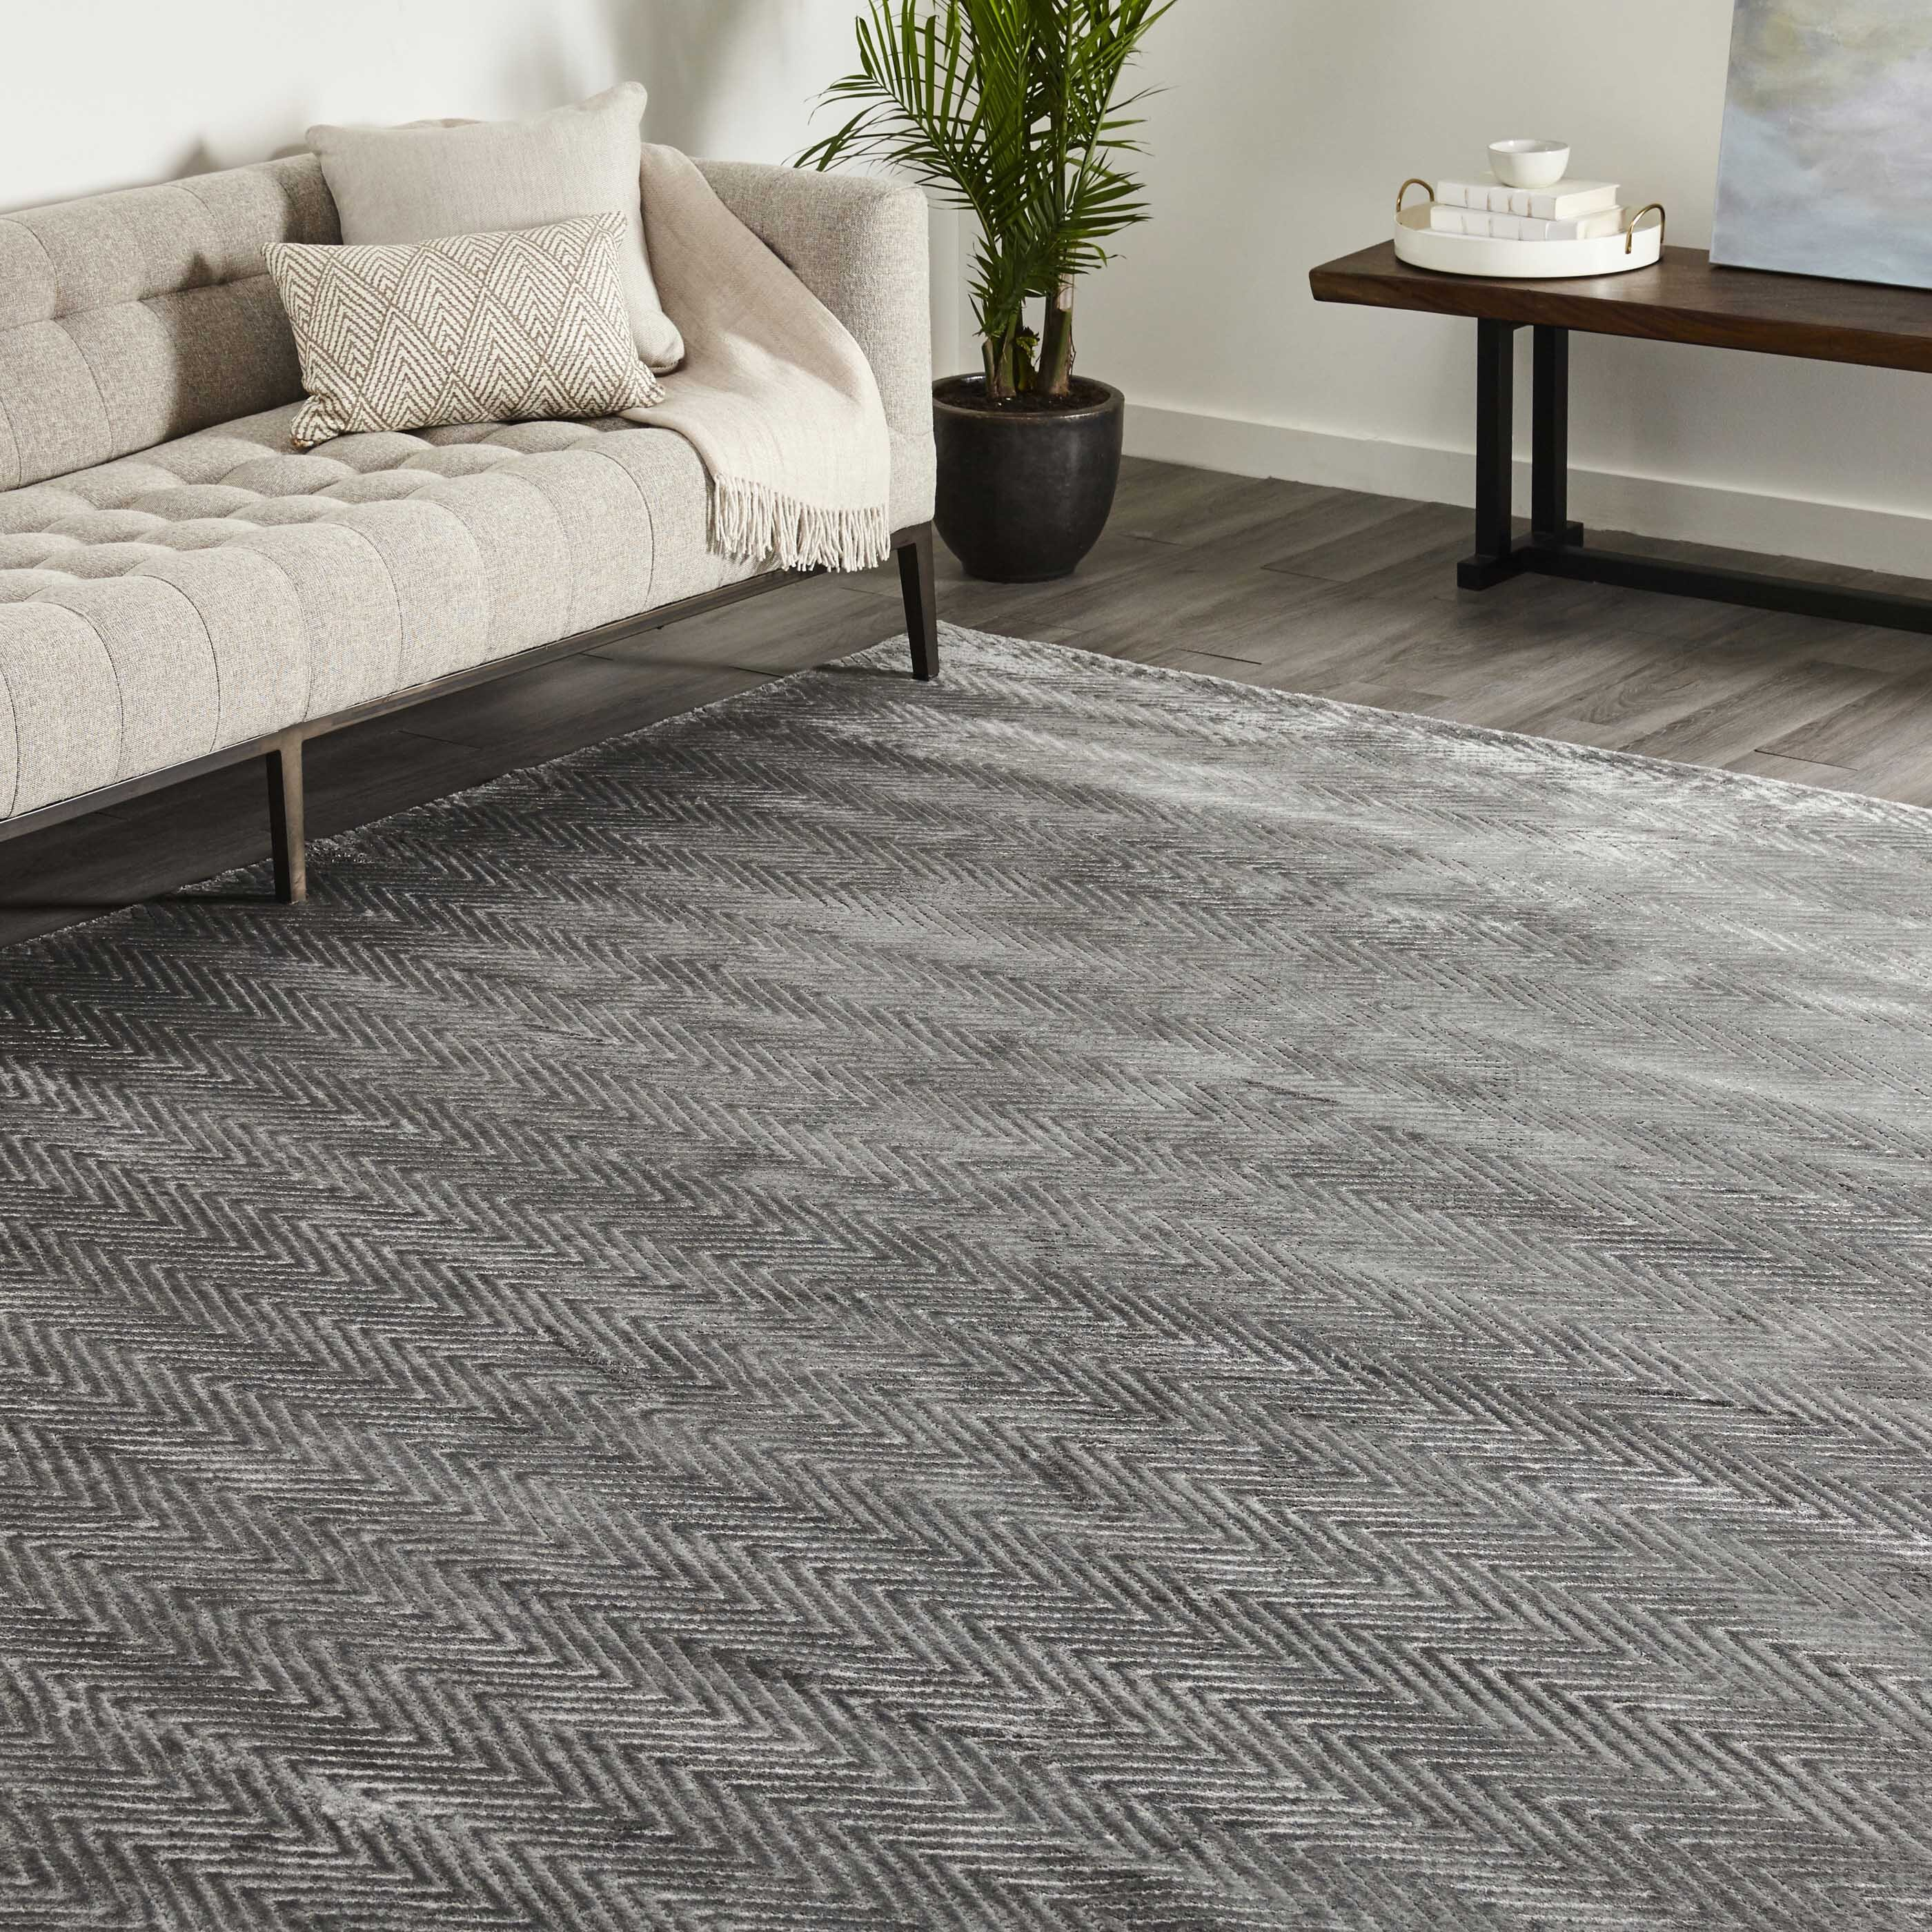 Knotted Silk Area Rugs You Ll Love In 2021 Wayfair